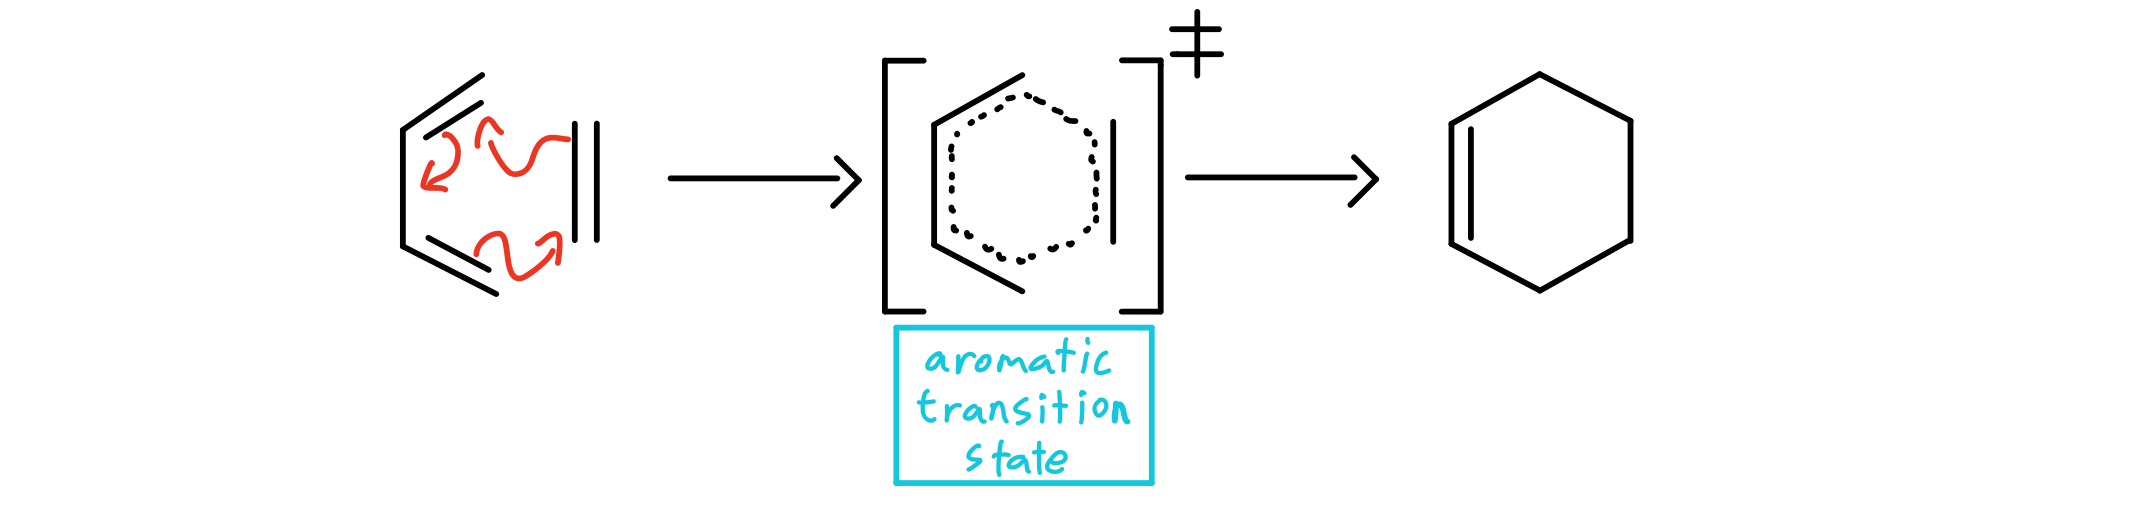 aromatic-transition-state